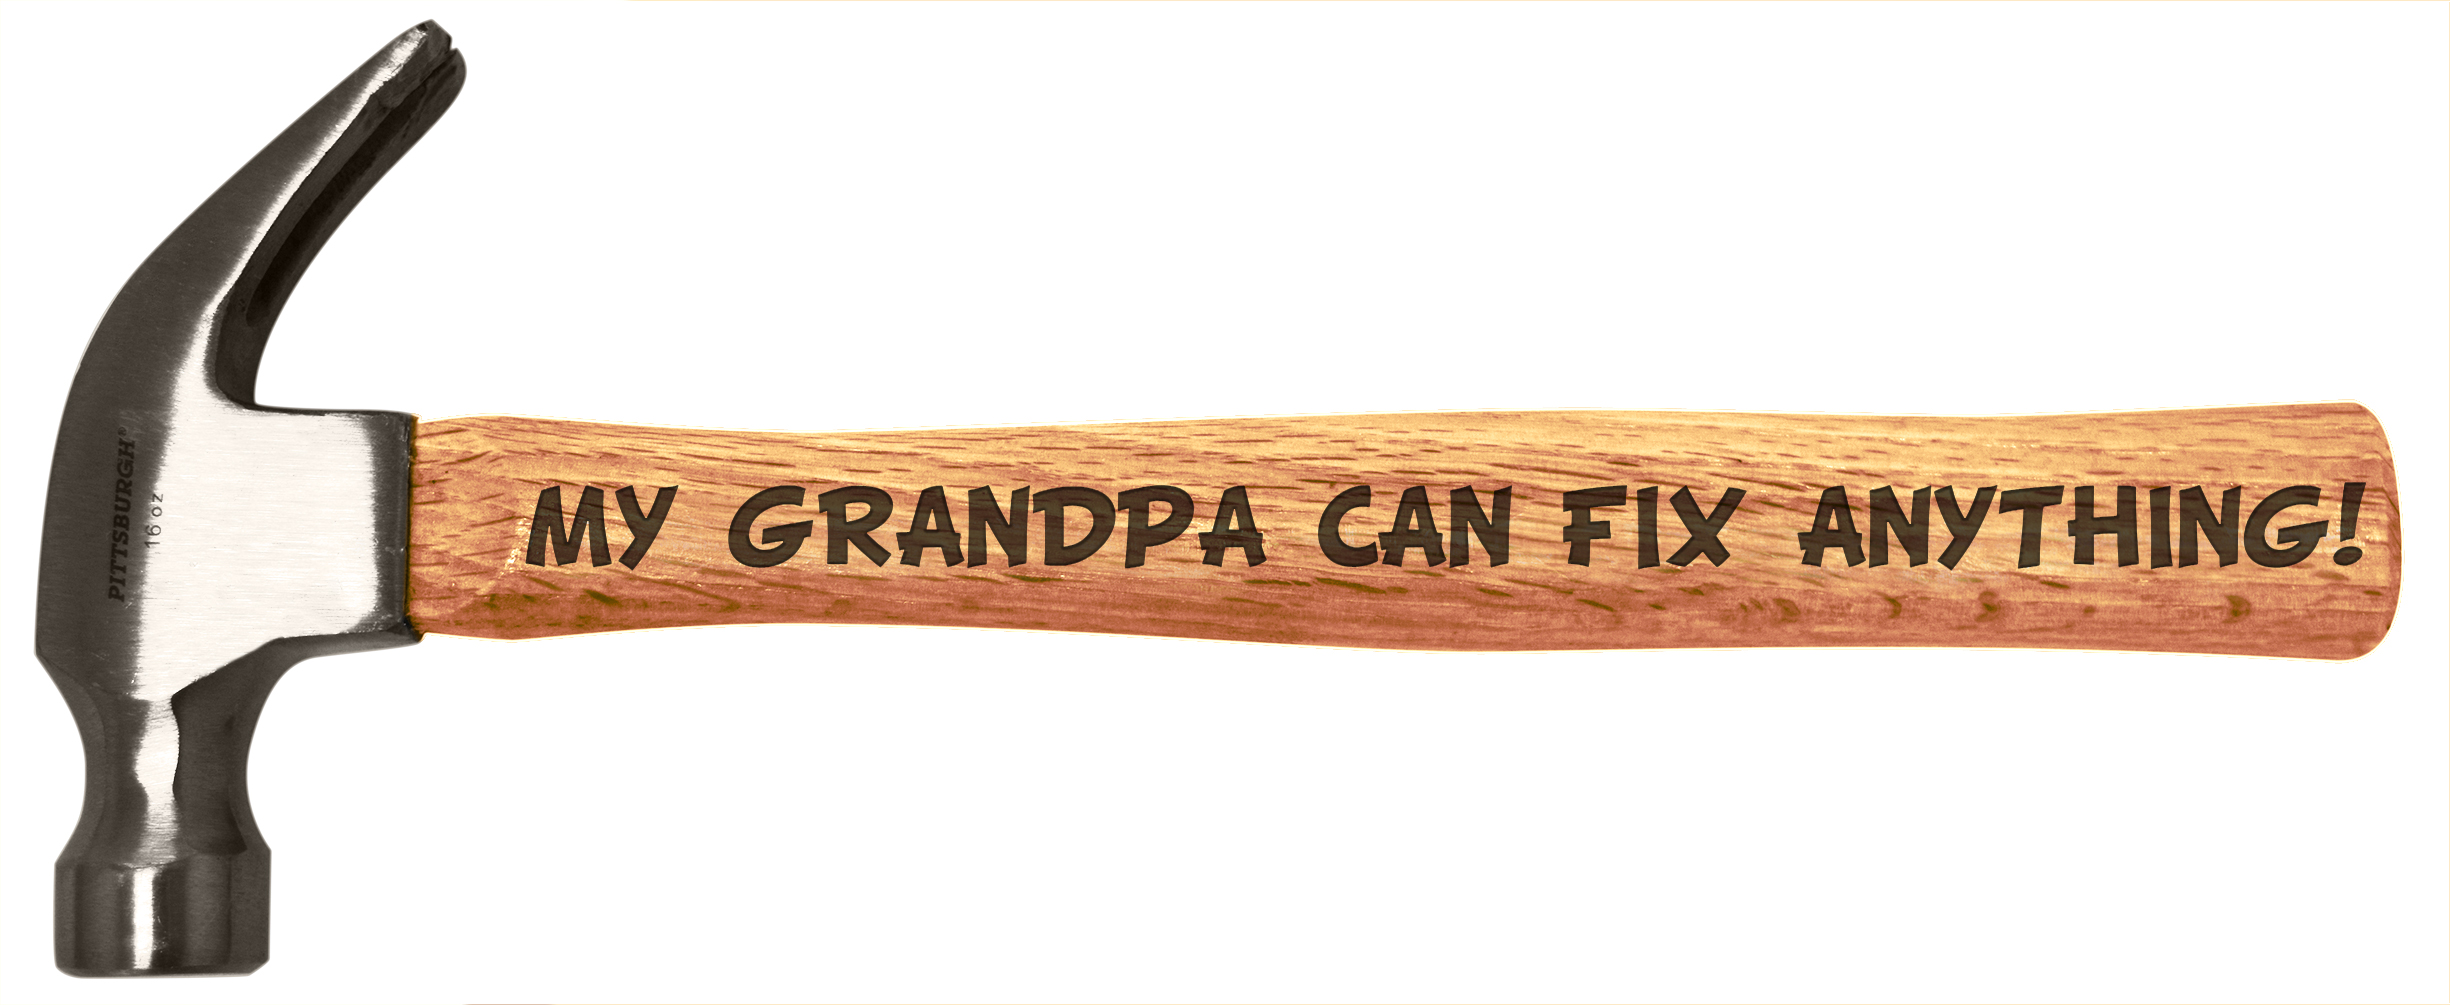 Father's Day Gift Grandpa Can Fix Anything DIY Tool Gift Engraved Handle Hammer